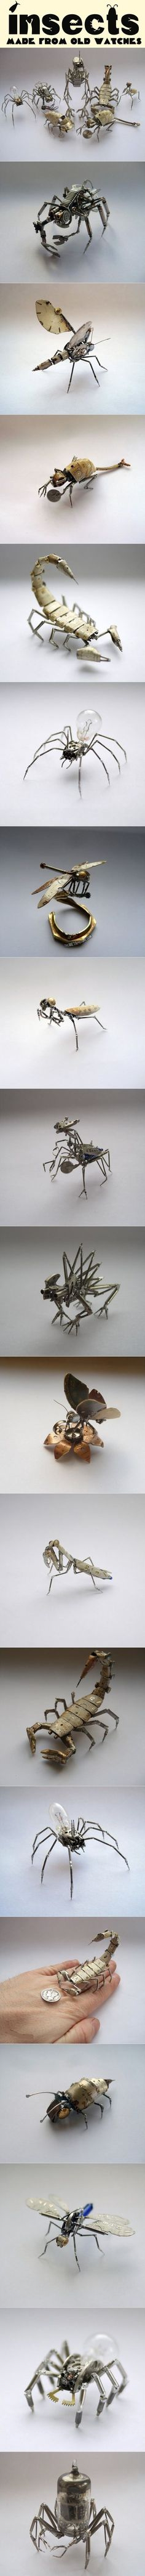 Insects Made From Old Watches